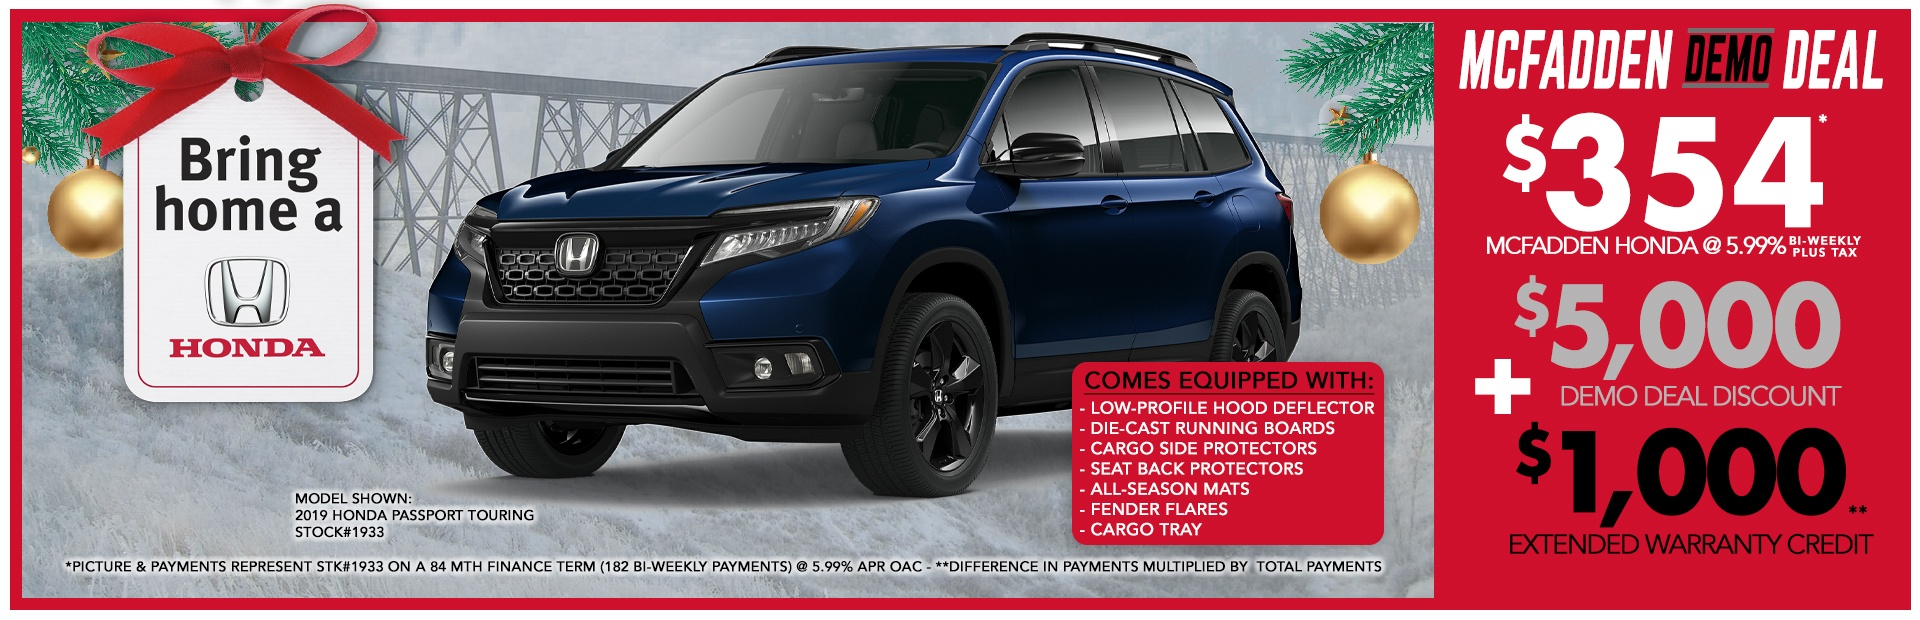 Stock# 1933 - Demo Sale gets you a loaded 2019 Honda Passport Touring with $5000 in Demo Sale Discounts + $1000 extended warranty credit